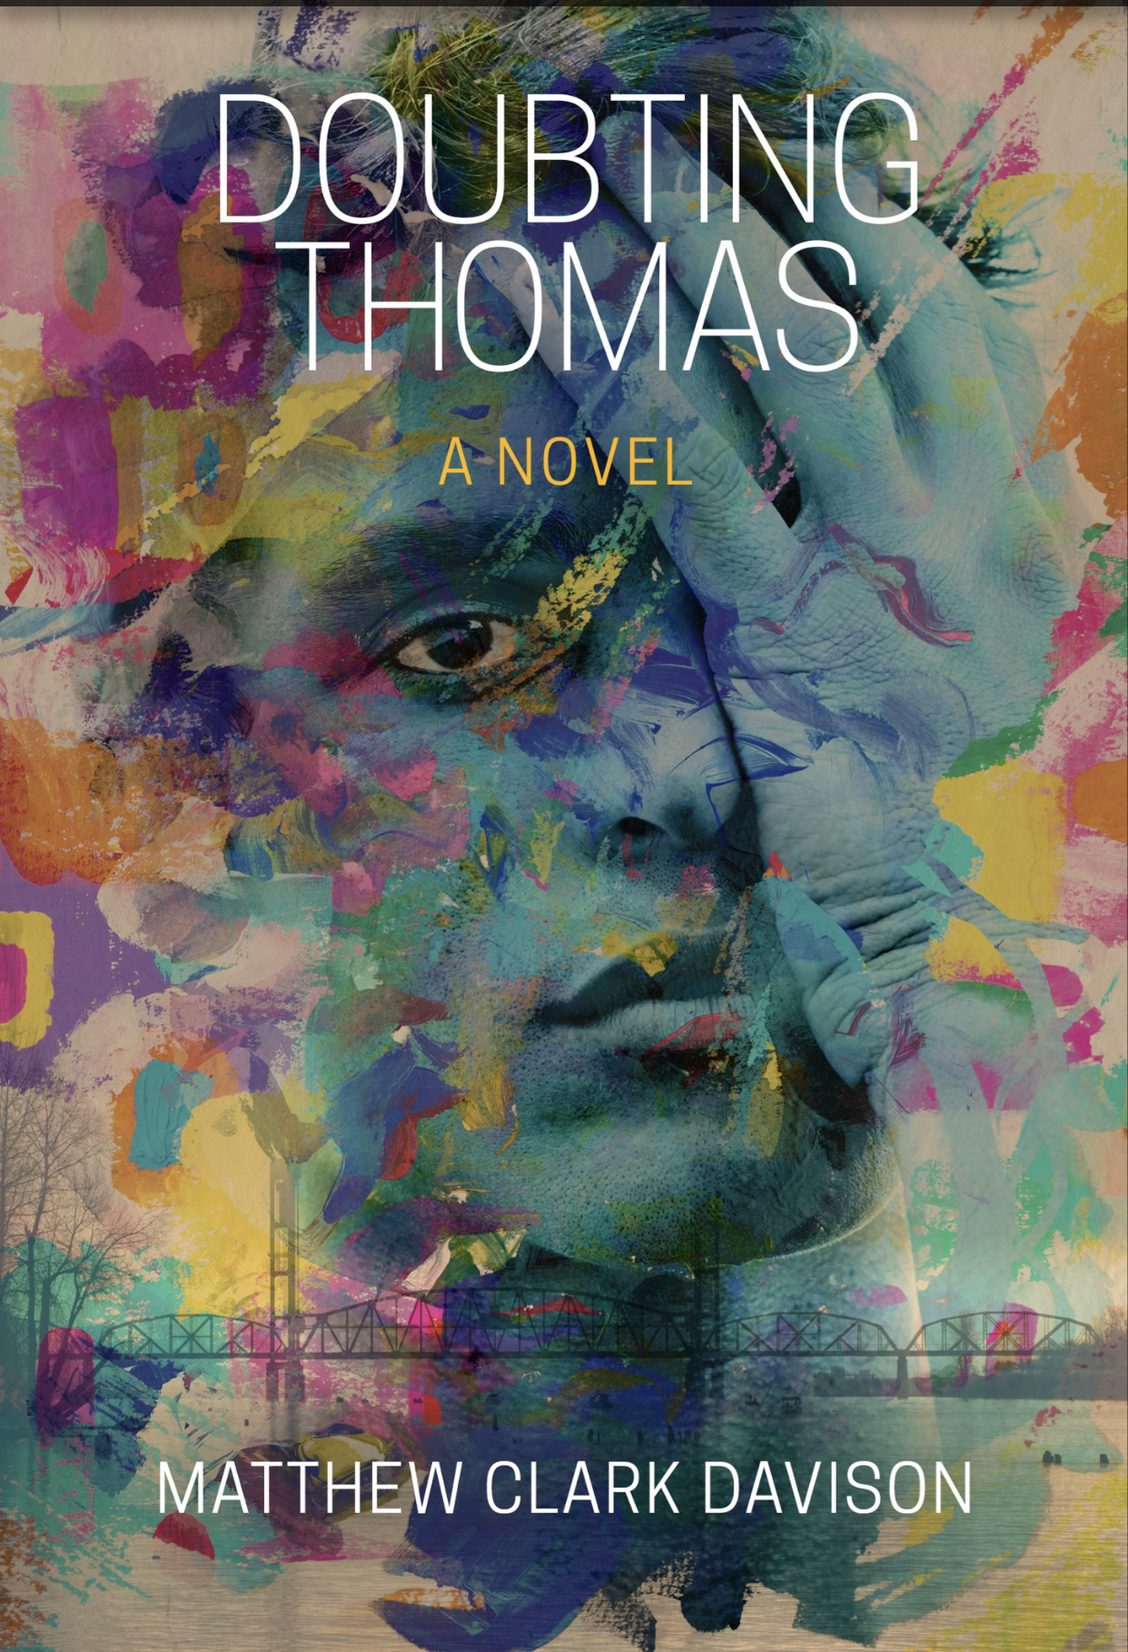 Cover of the novel Doubting Thomas by Matthew Clark Davison, a man's face with his hand covering one eye